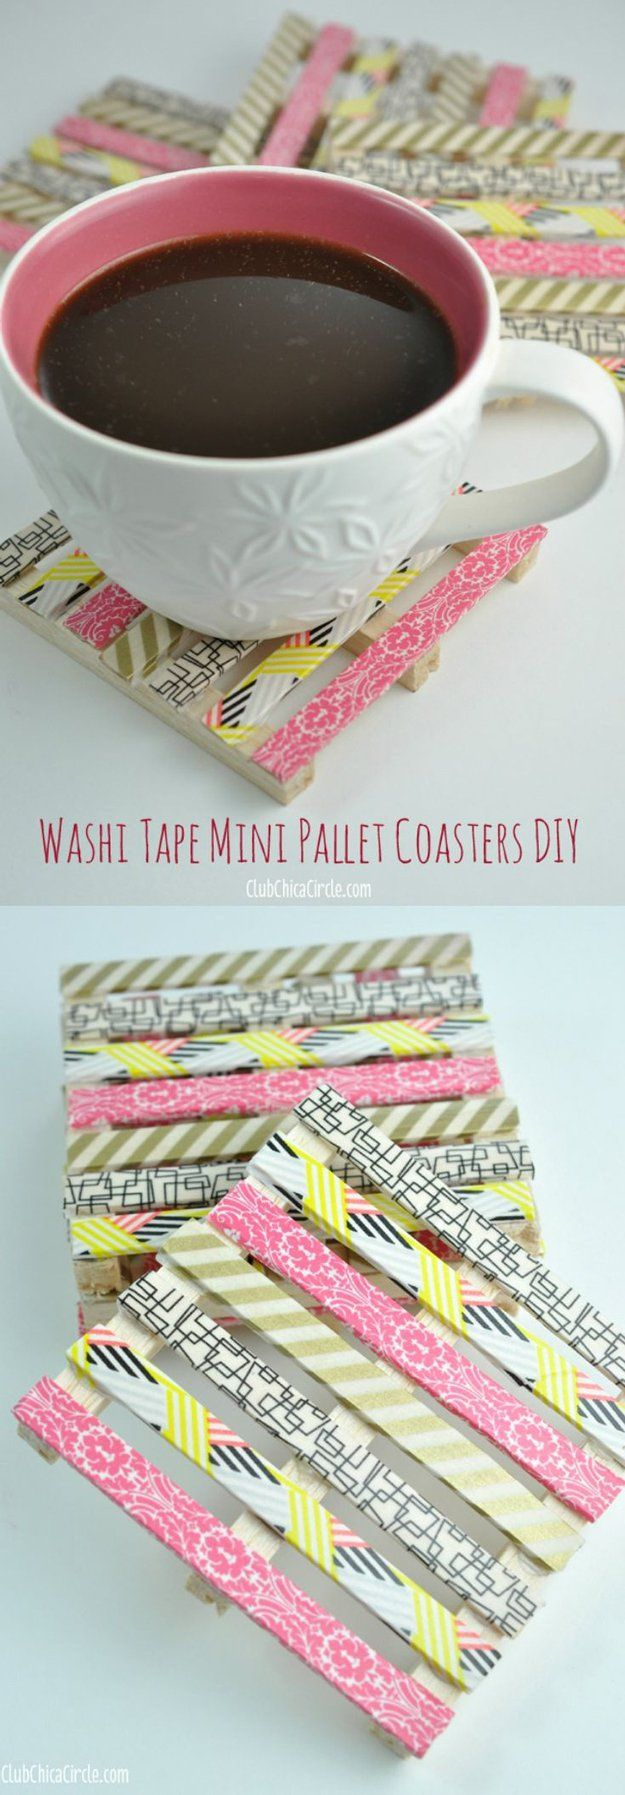 Washi Tape Crafts - Washi Tape Pallet Coasters - Wall Art, Frames, Cards, Pencils, Room Decor and DIY Gifts, Back To School Supplies - Creative, Fun Craft Ideas for Teens, Tweens and Teenagers - Step by Step Tutorials and Instructions http://diyprojectsforteens.com/washi-tape-crafts